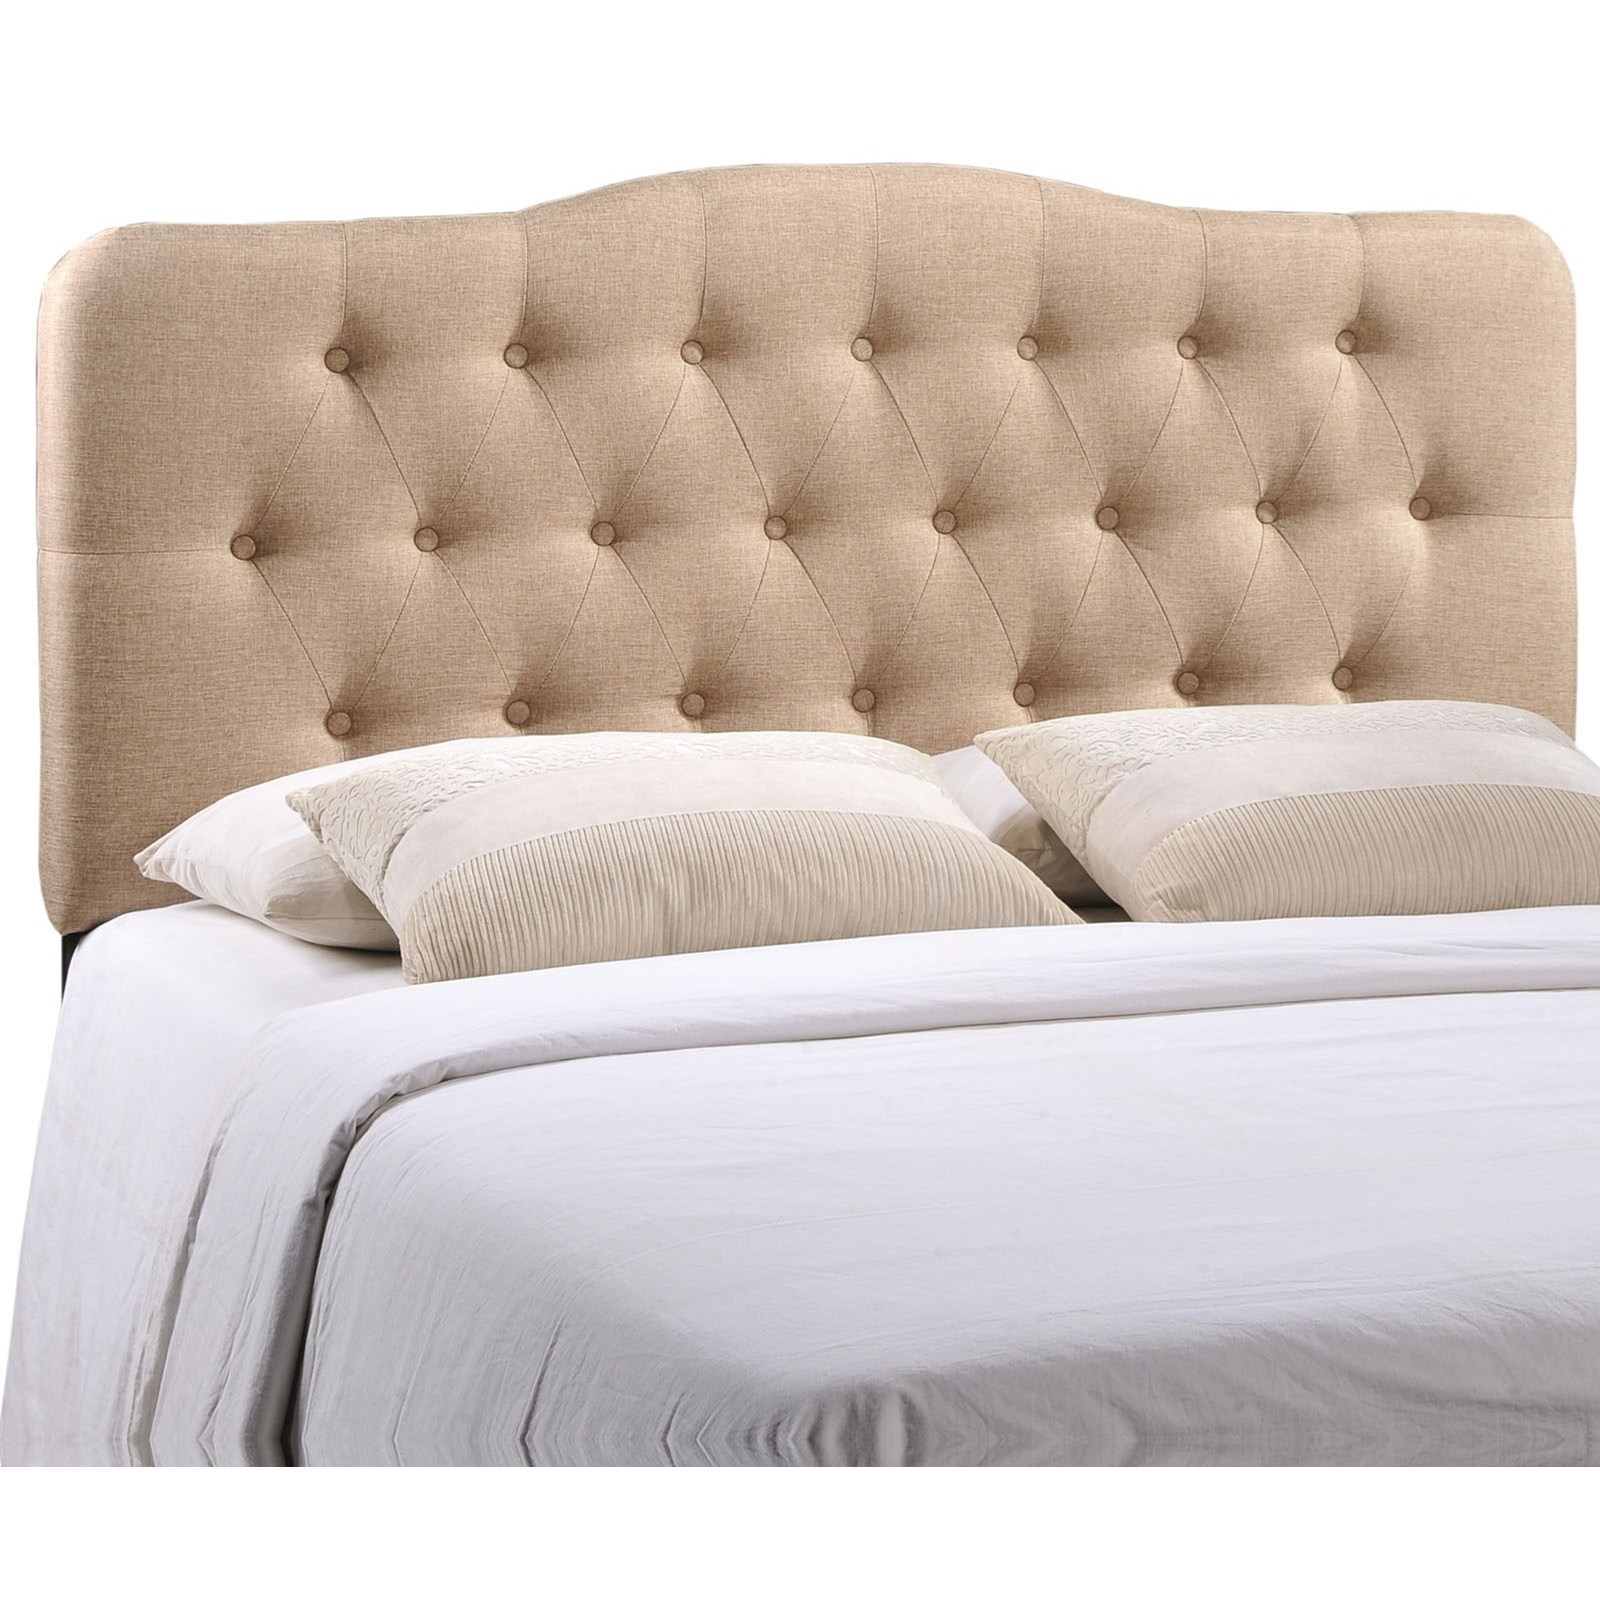 Annabel Queen Upholstered Headboard by Modway at Value City Furniture